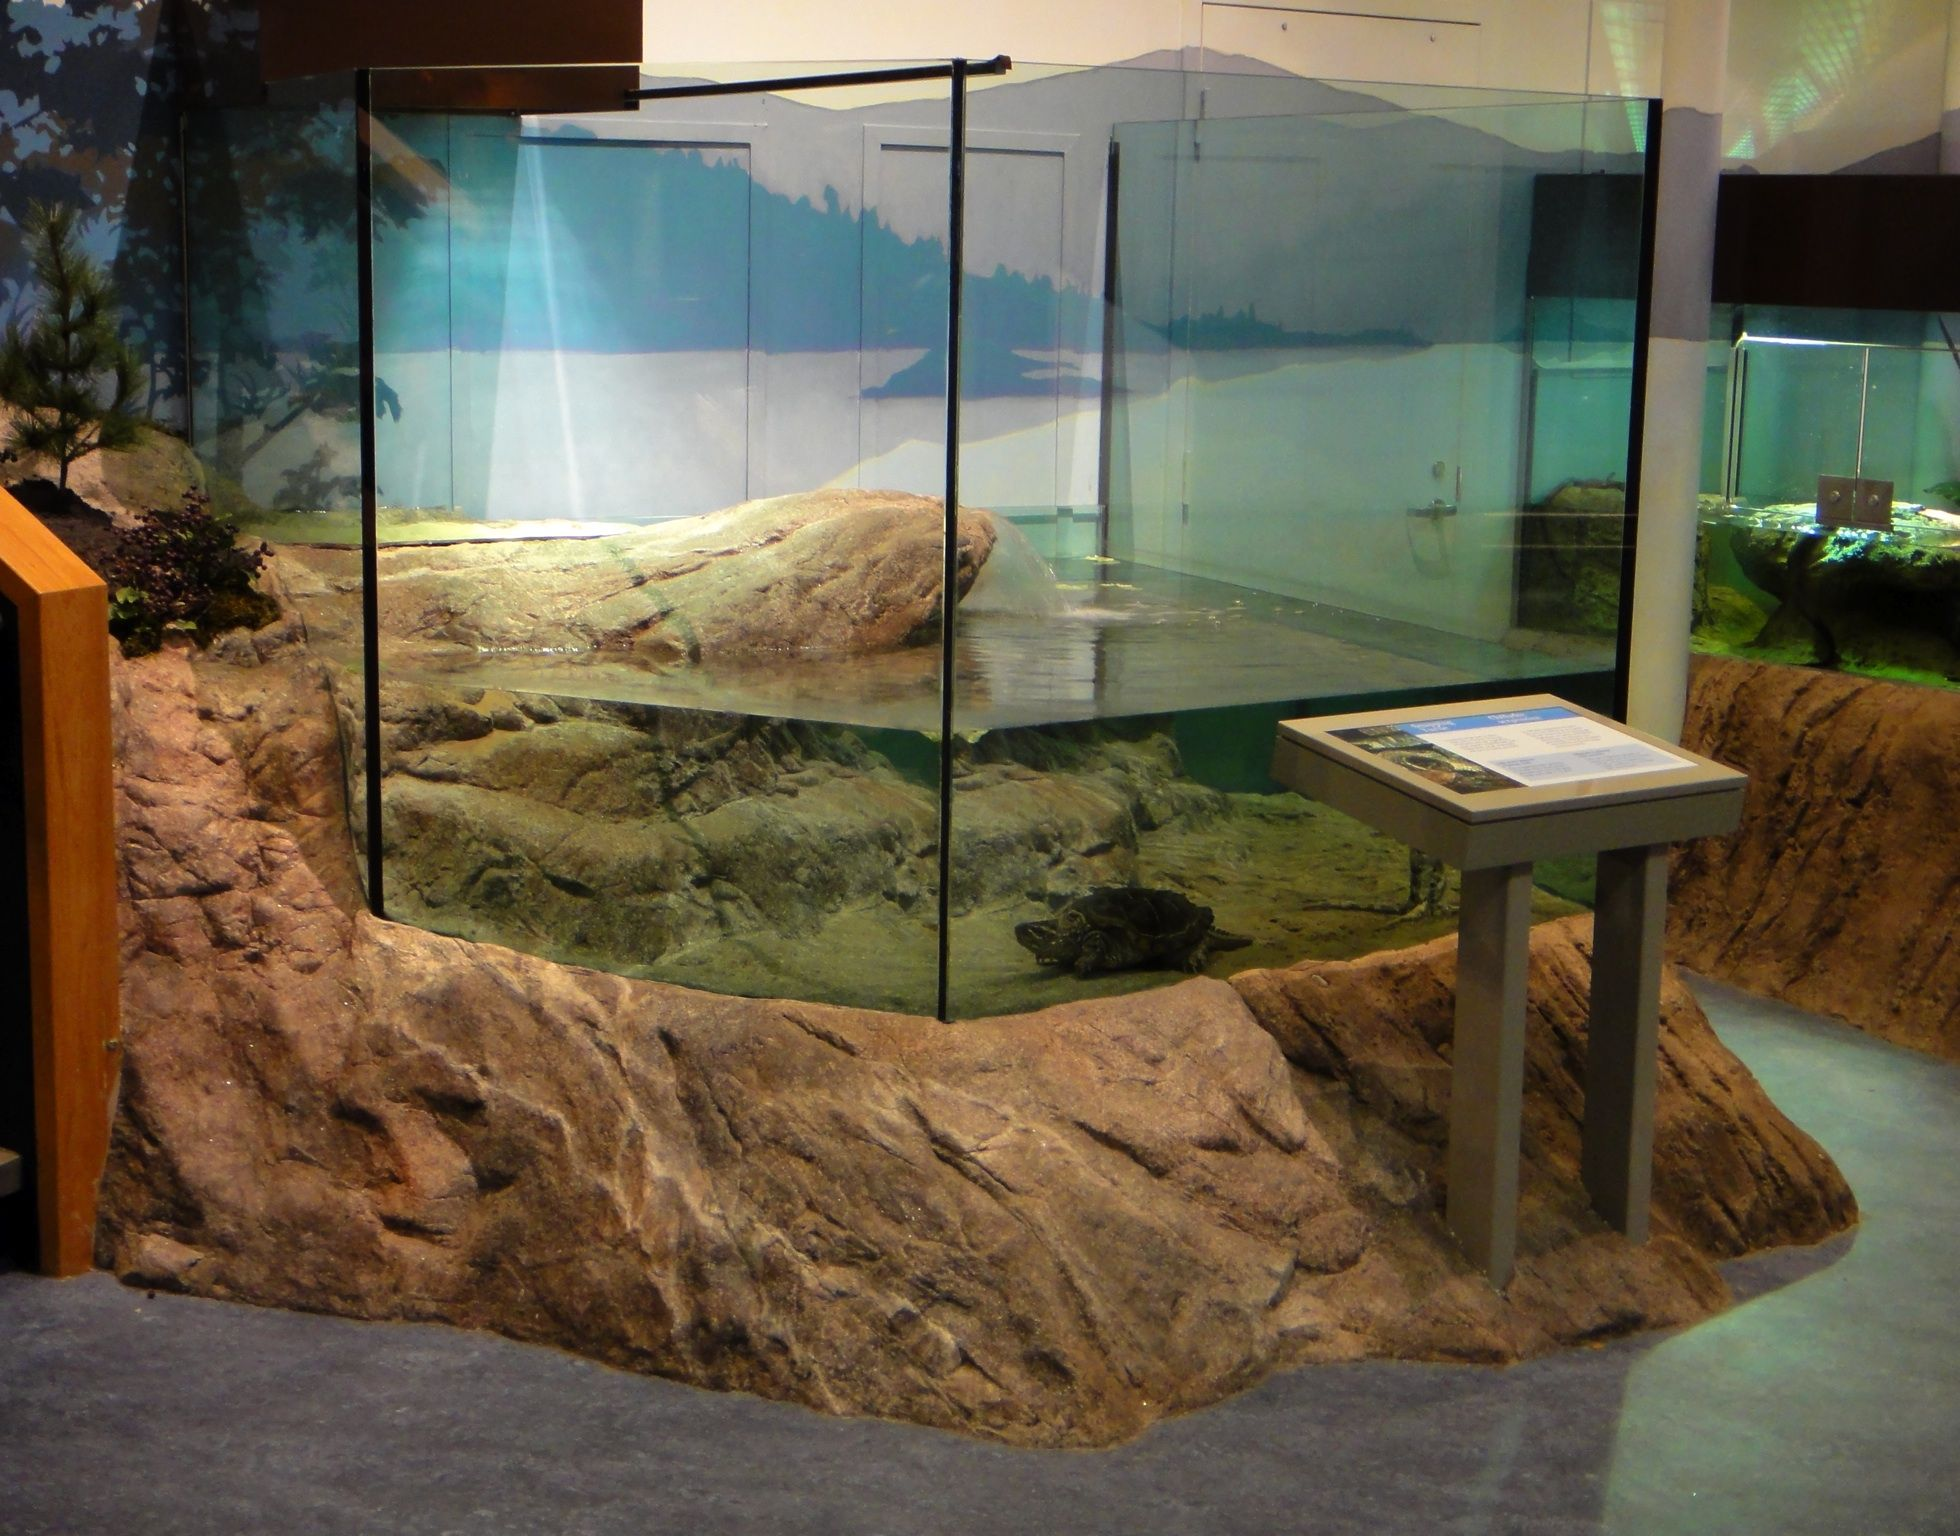 An Artificial Rock Skirt Around A Custom Glass Aquarium